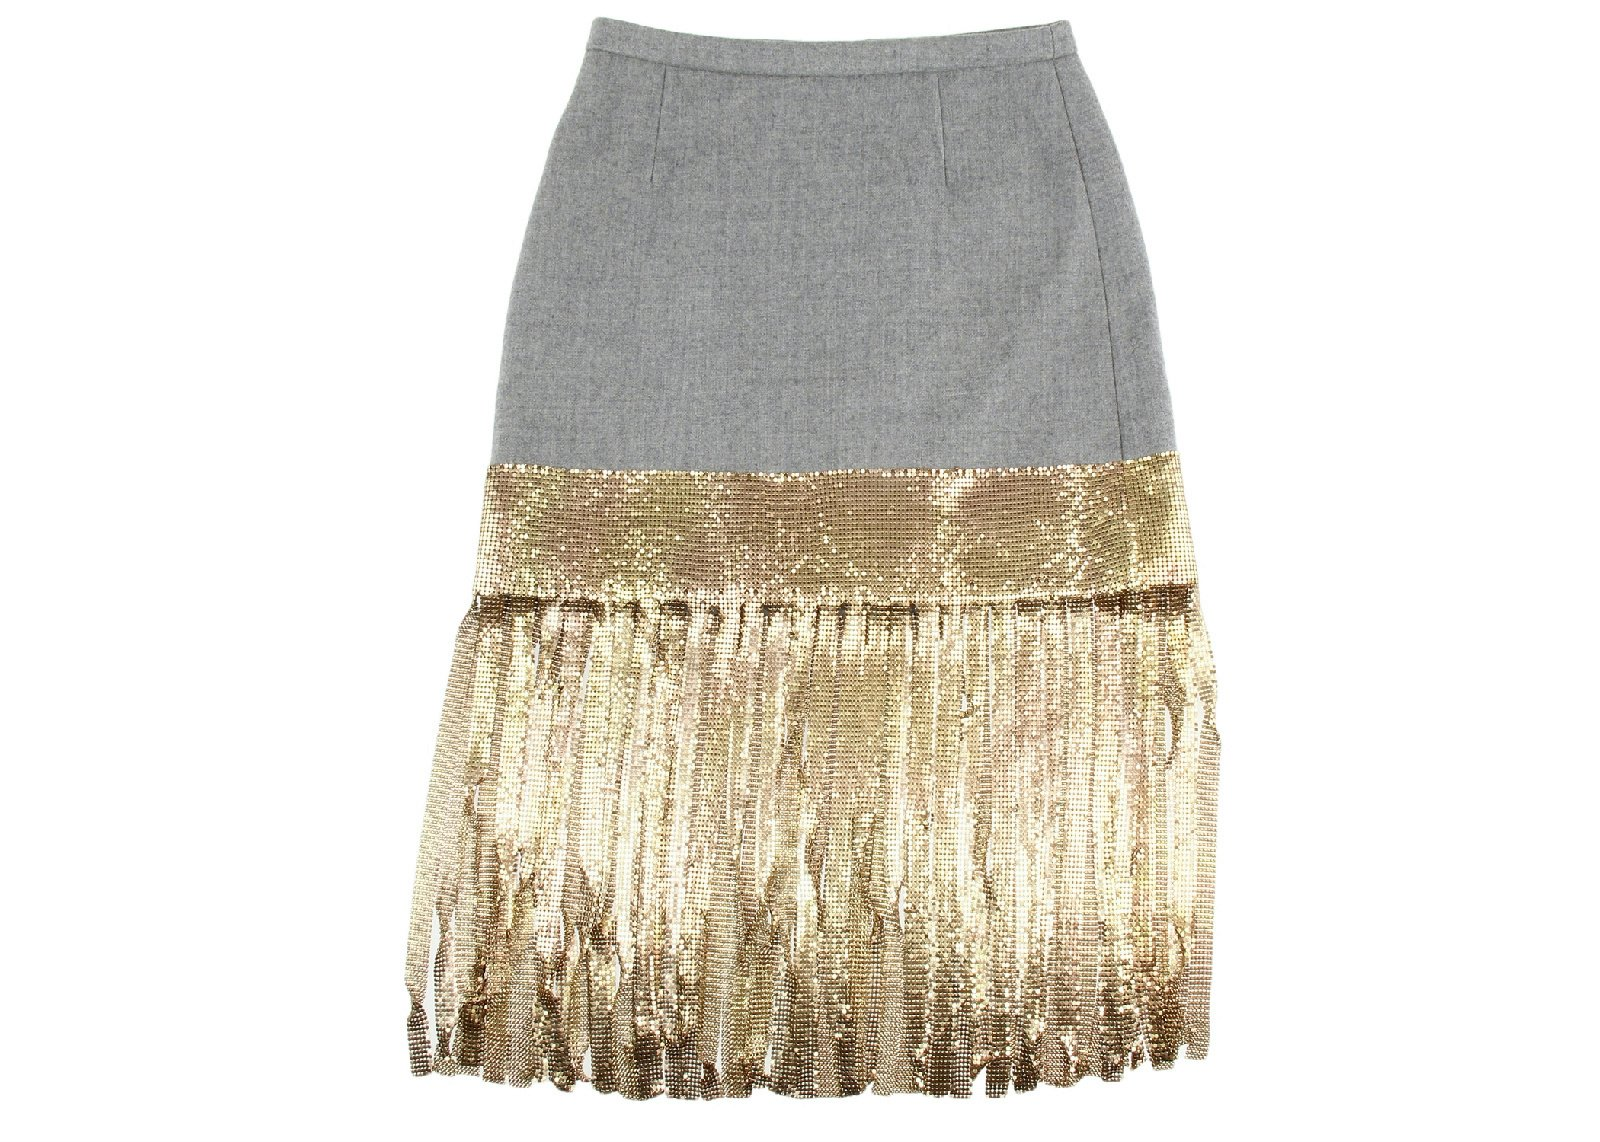 J Crew Collection Wool Skirt With Metallic Fringe Size 2 Style C2951 by J.Crew